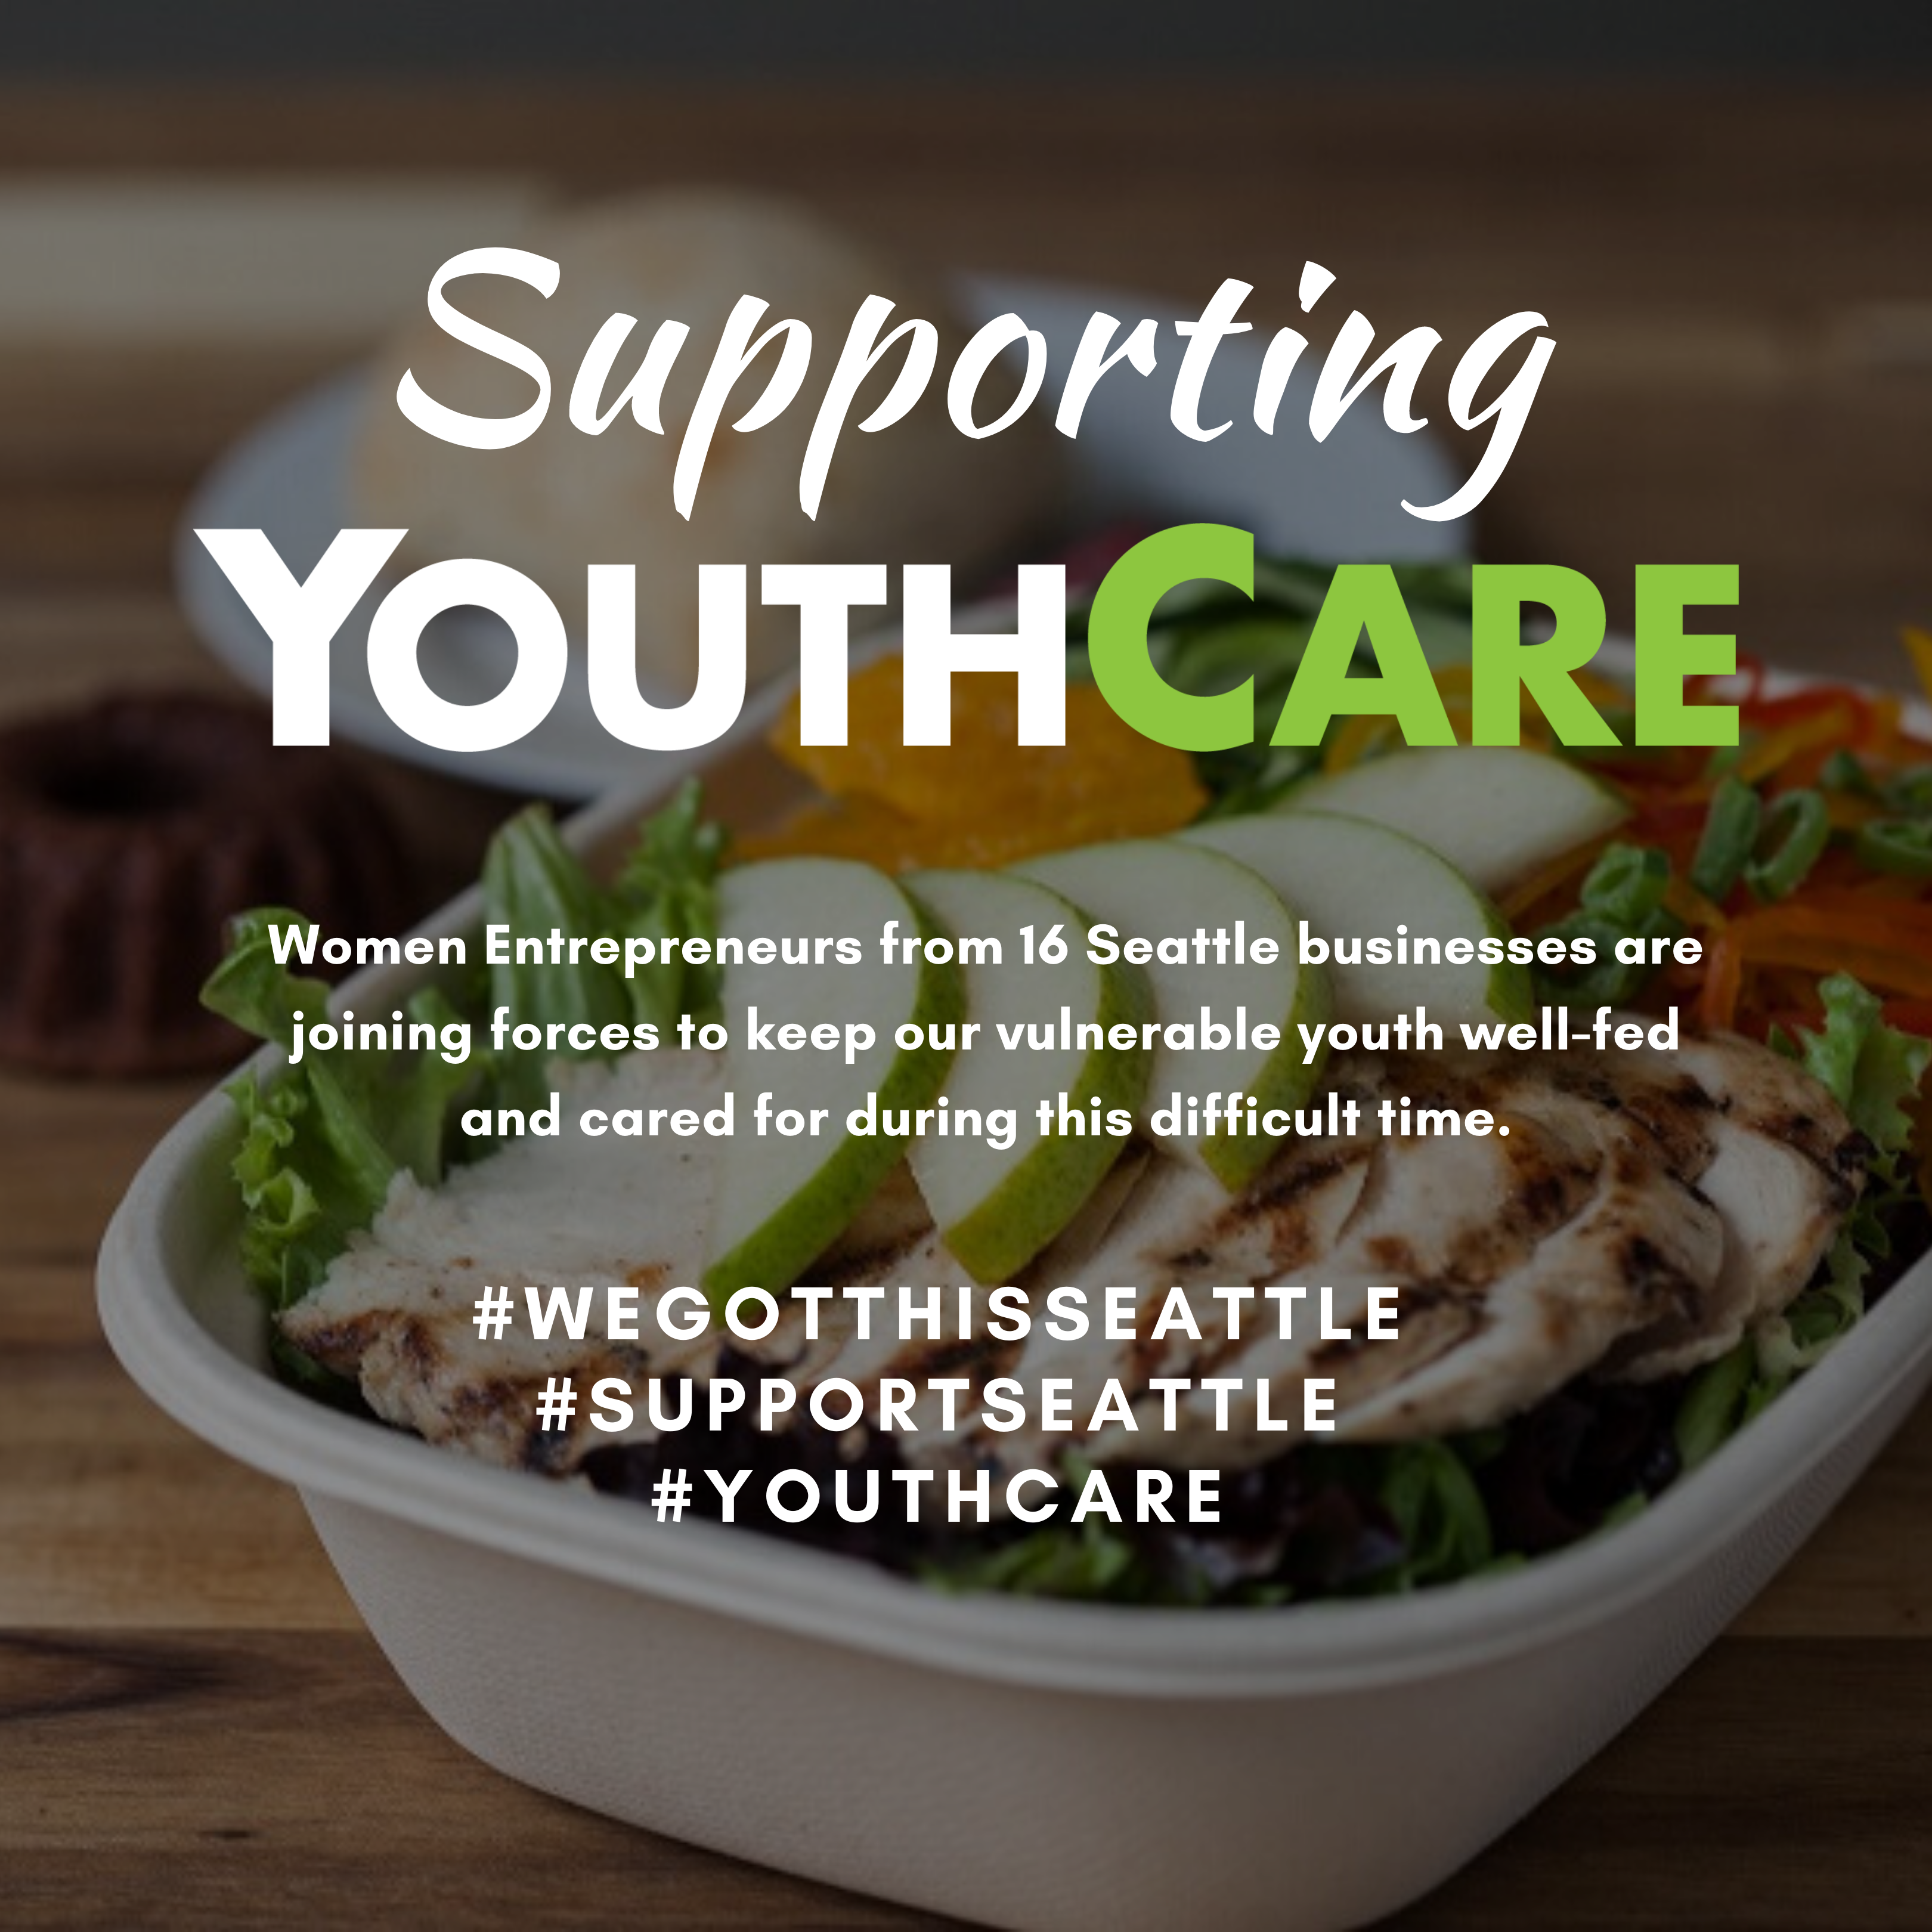 YouthCare-Social-Media-Post.png#asset:6404